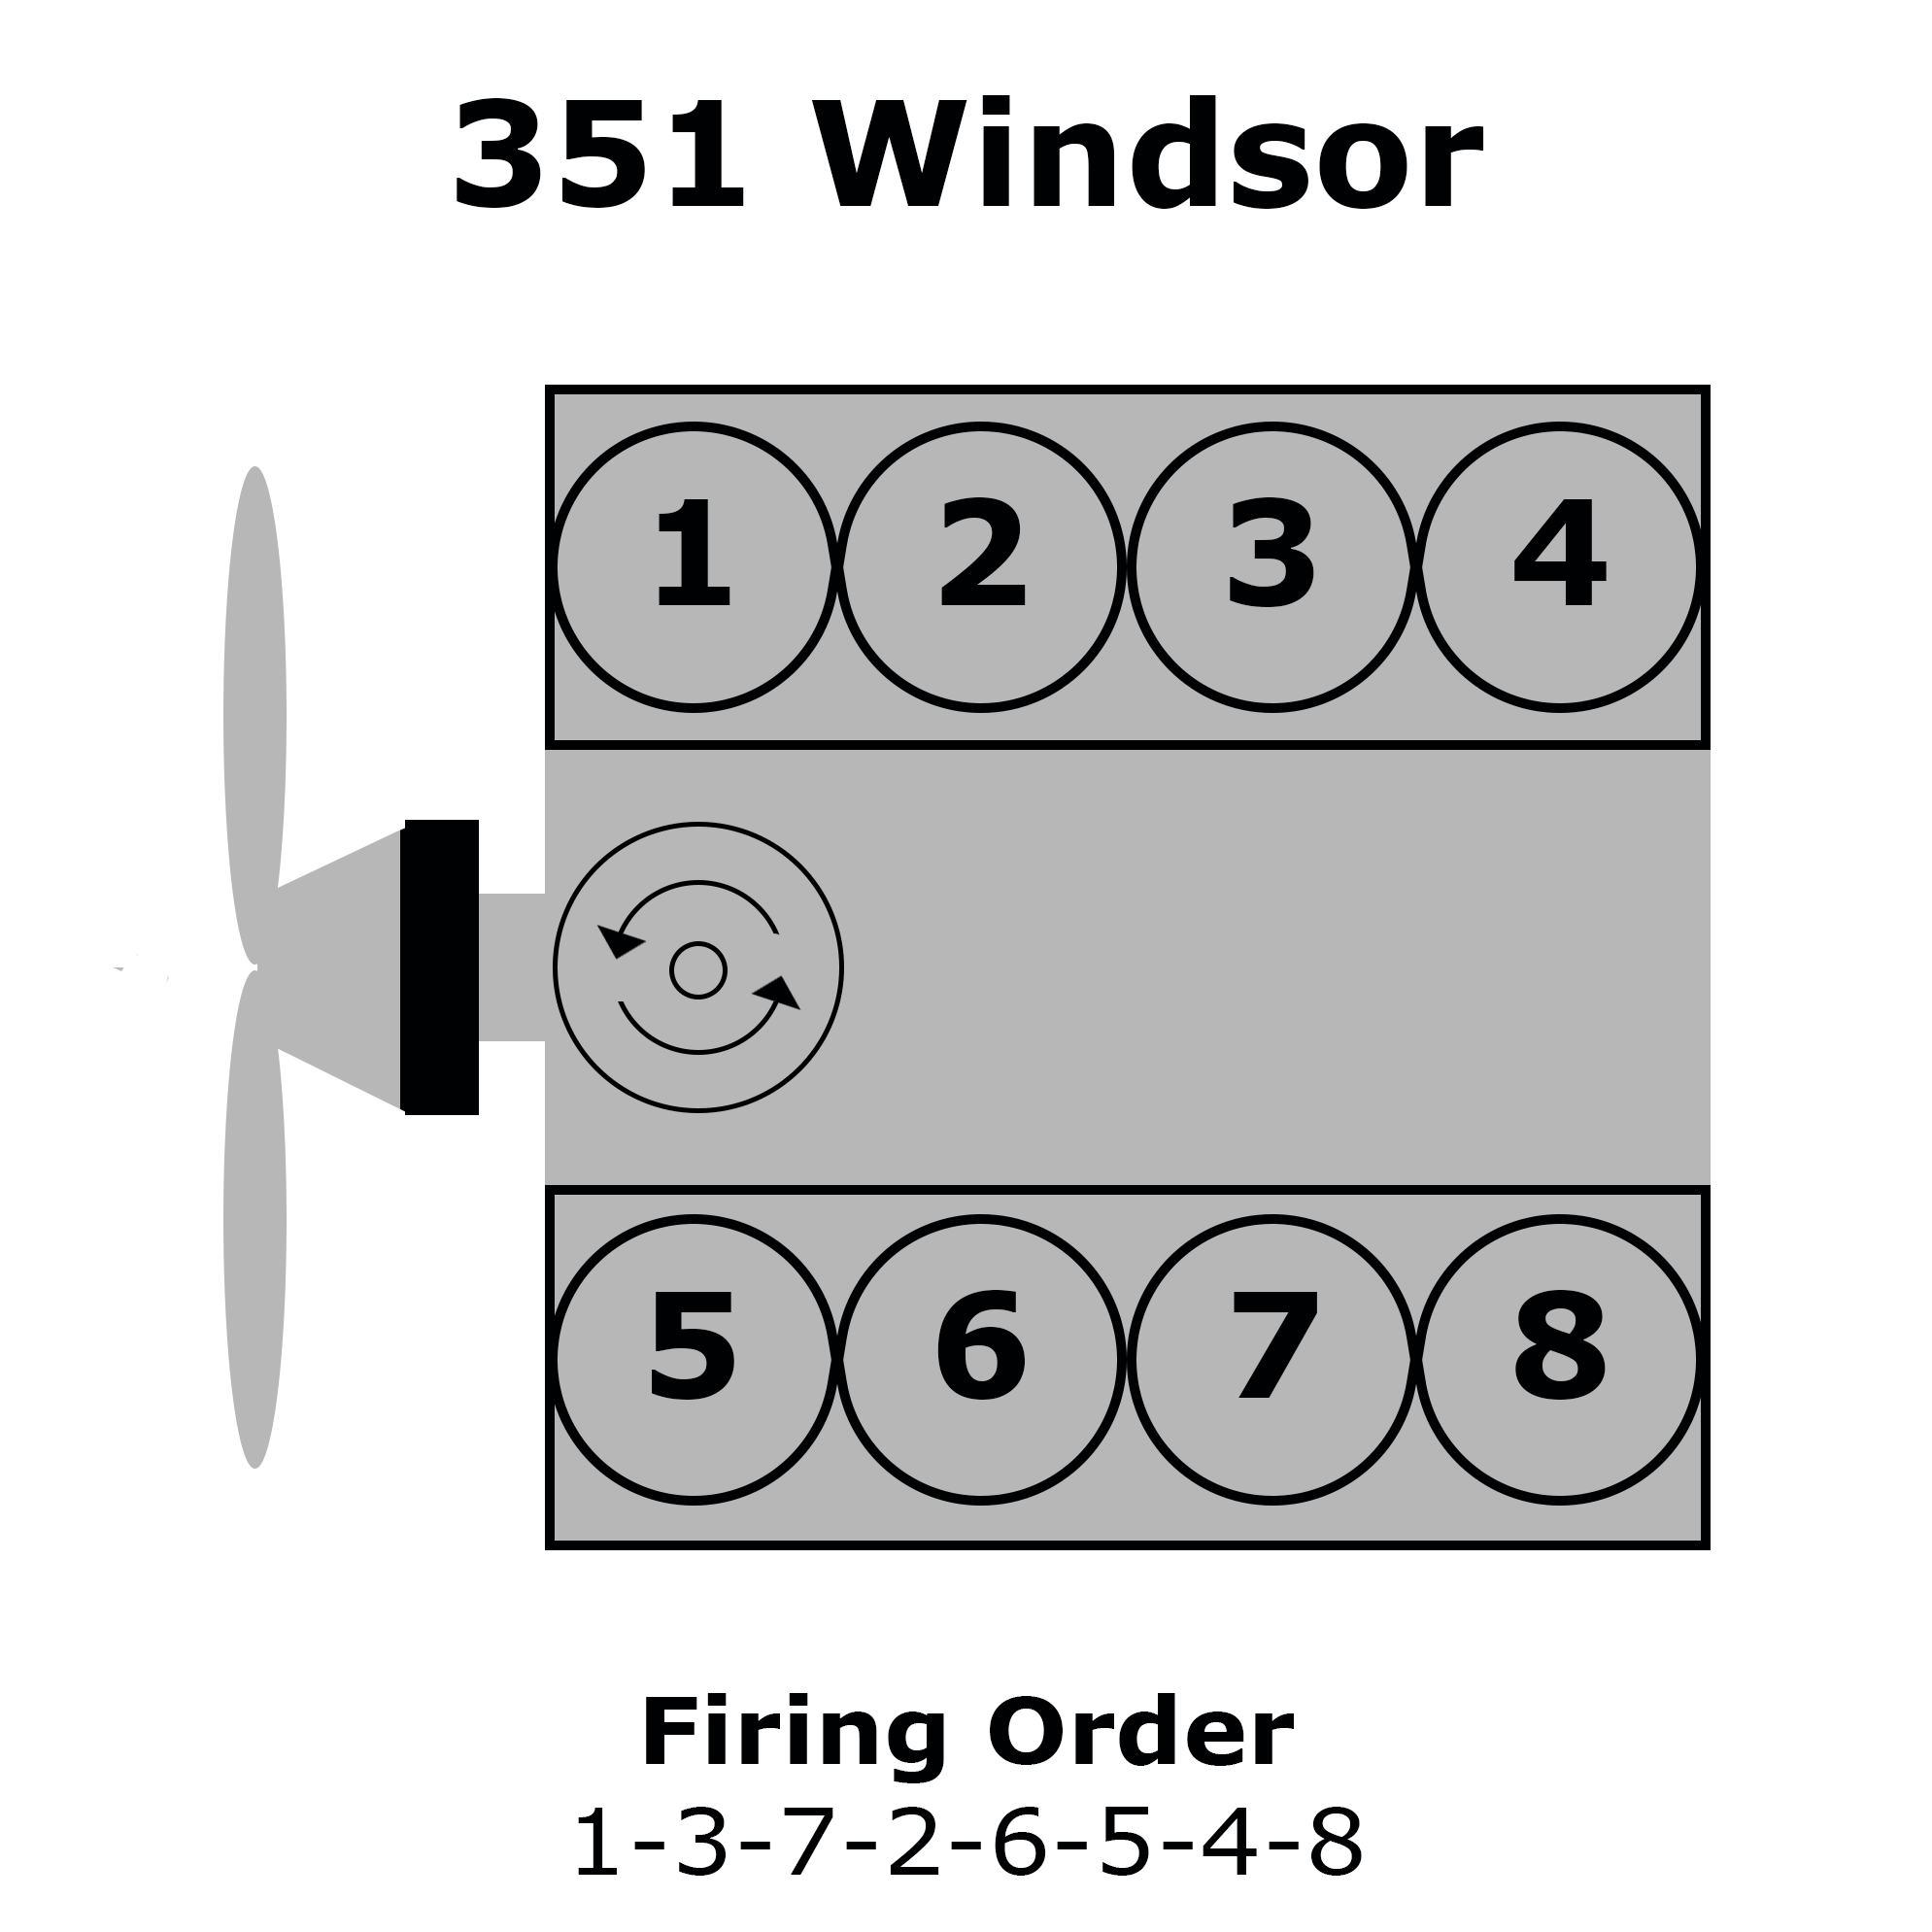 Ford 351 Windsor Firing Order